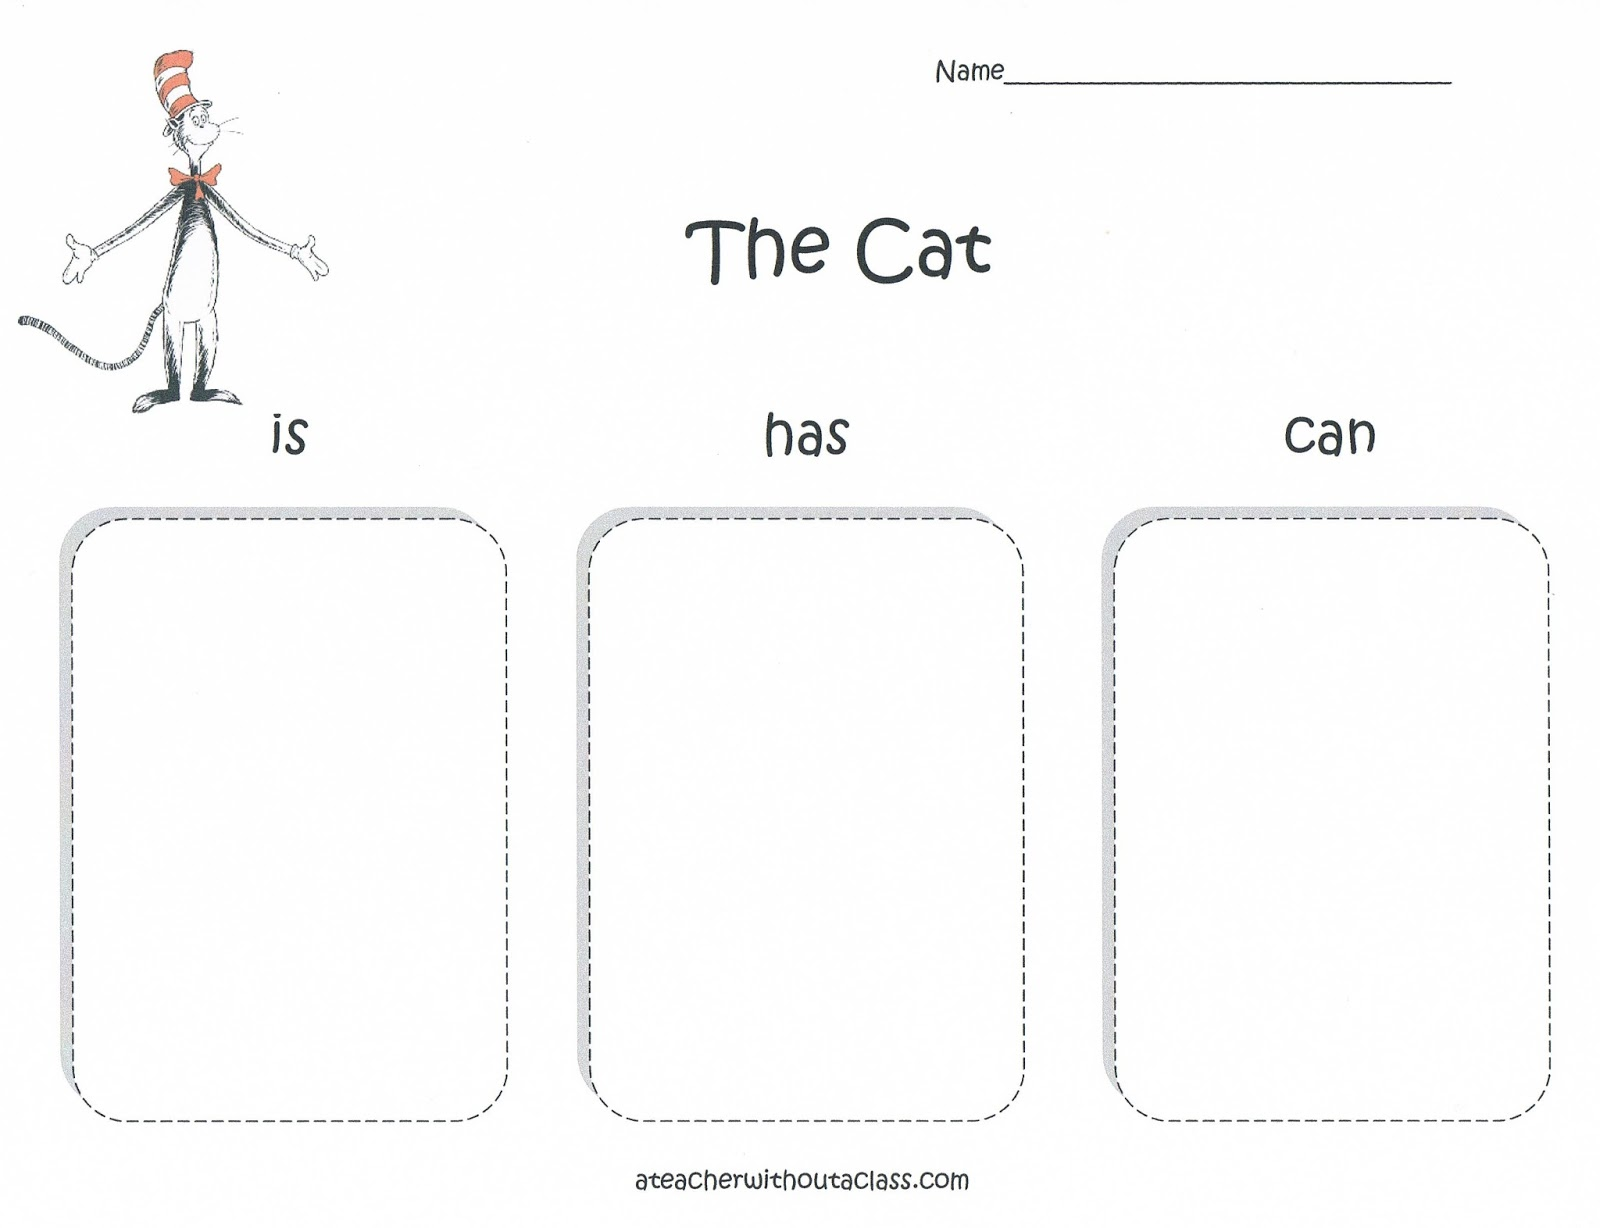 Worksheet Cat In The Hat Worksheets Grass Fedjp